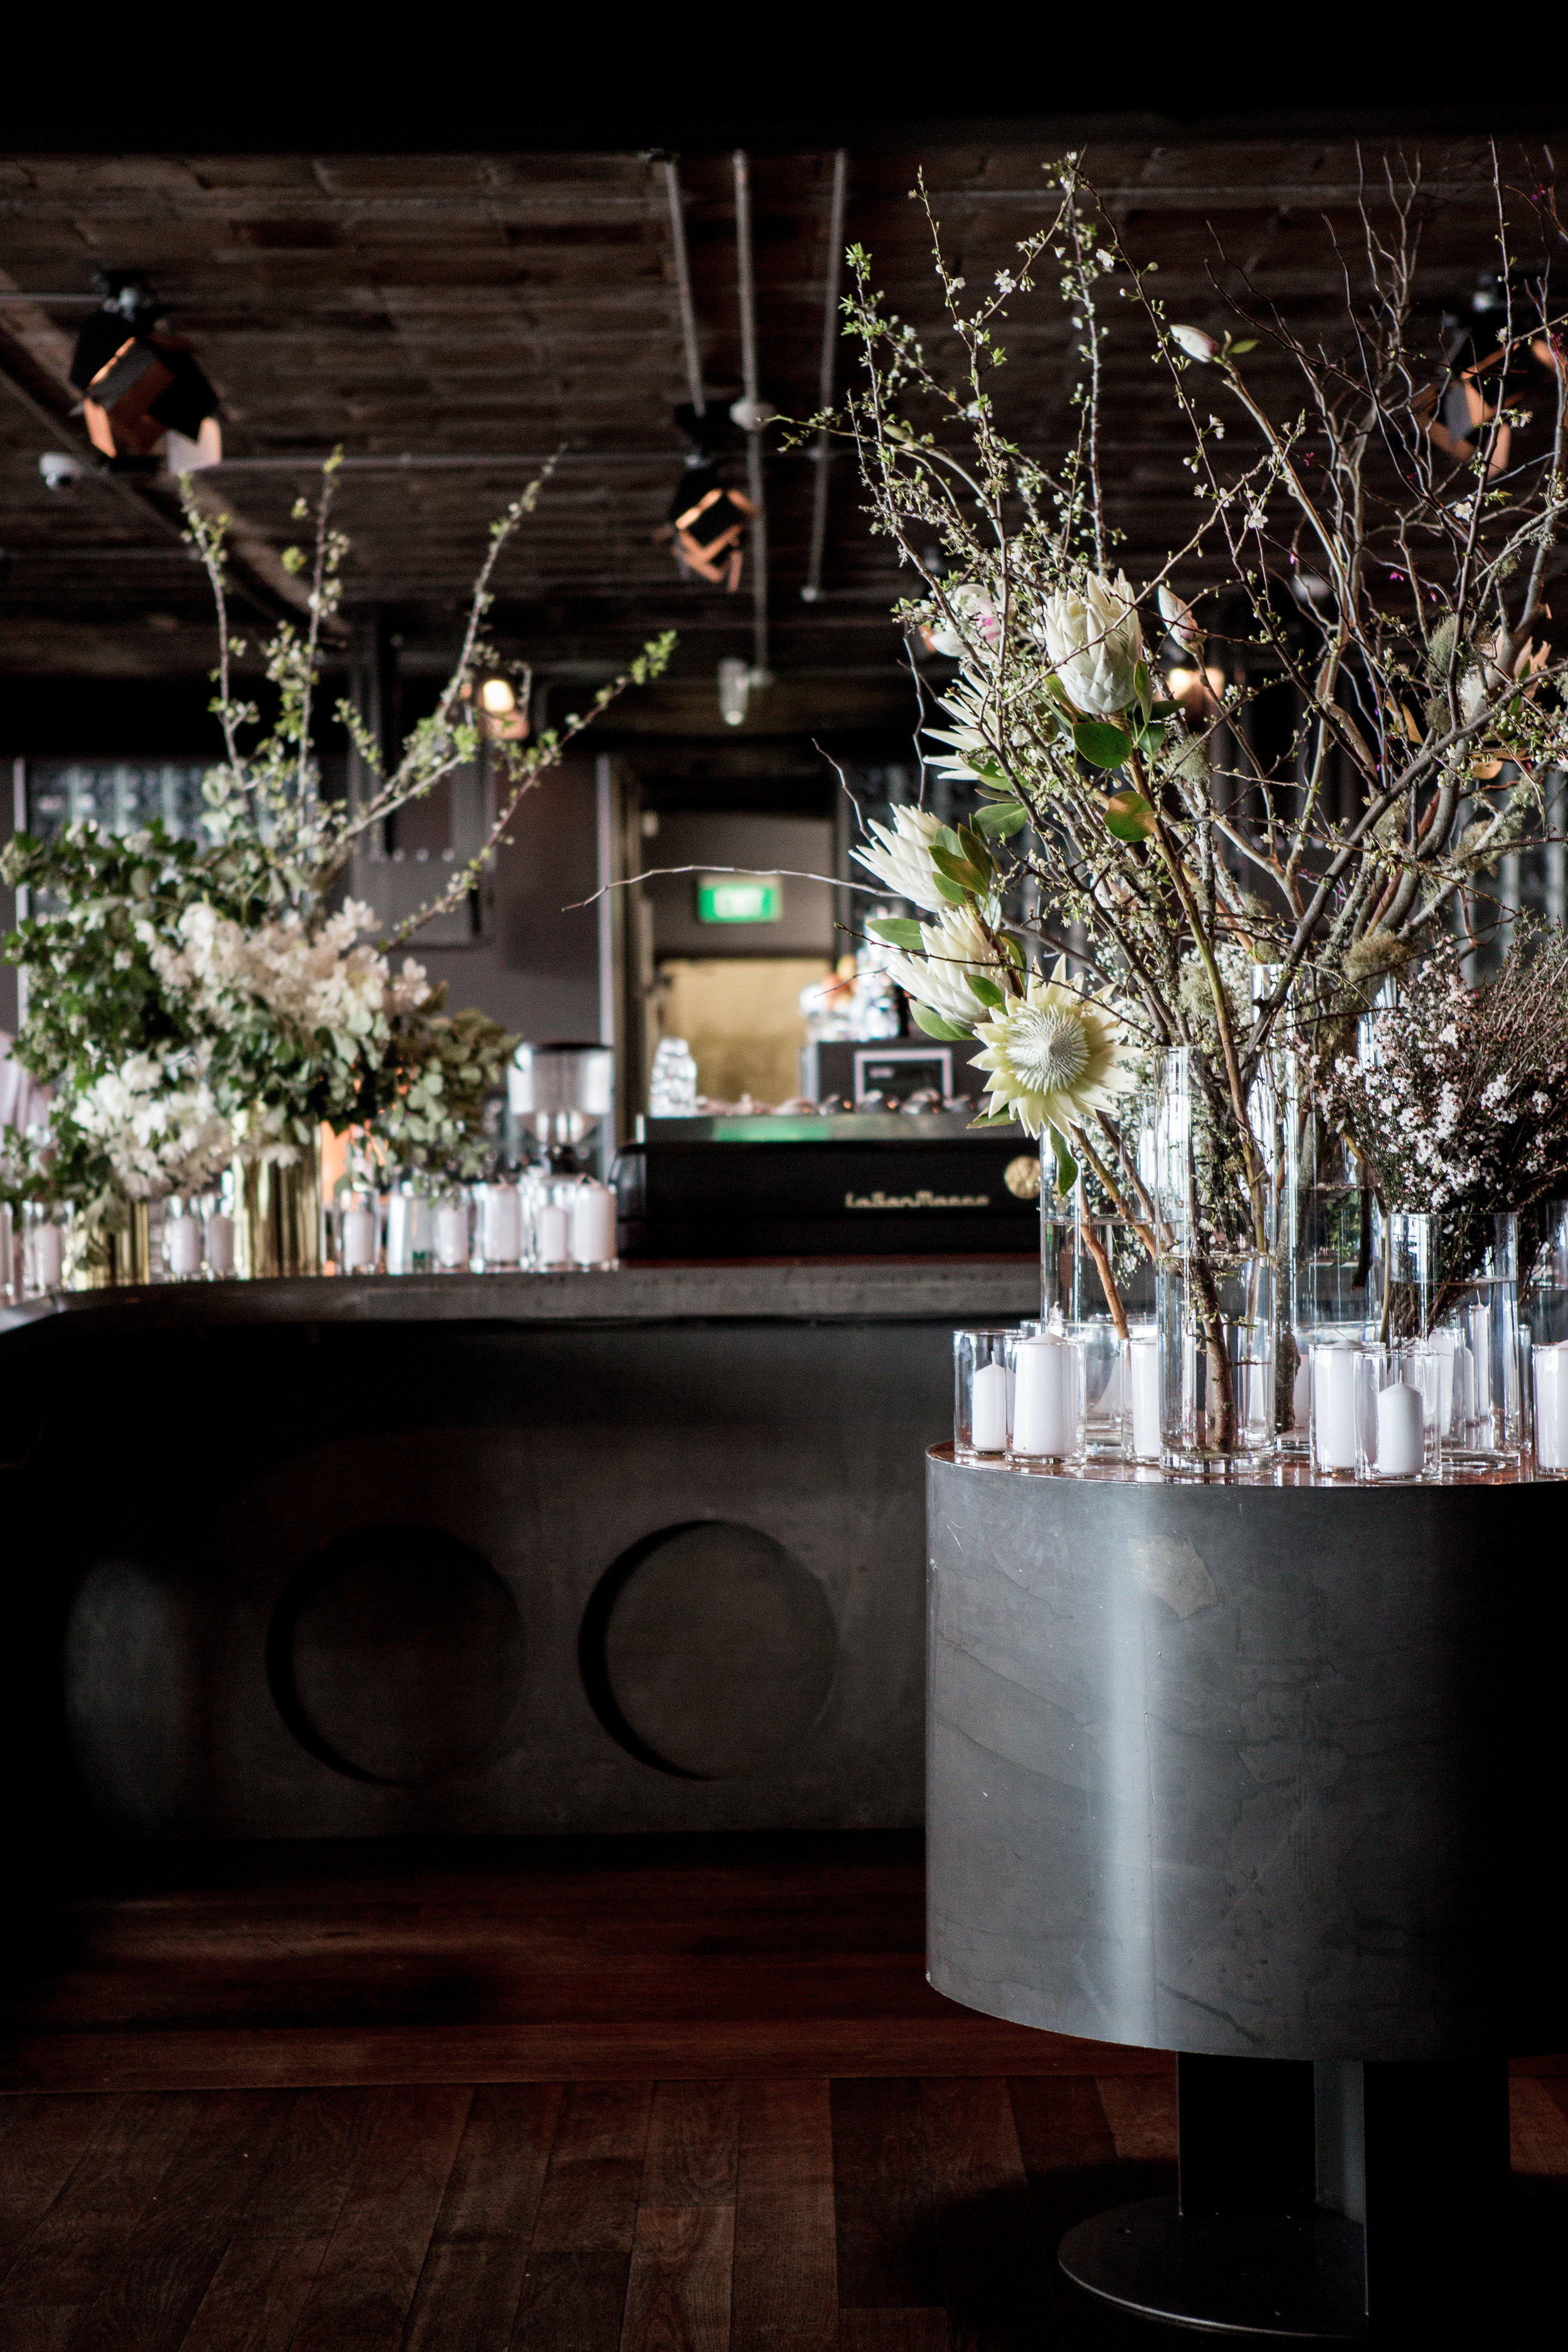 ostro brasserie and bar / seafearers, britomart, auckland - photography, benjamin and elise / styling, blush / interior at ostro, beautifully captured by amanda thomas photography